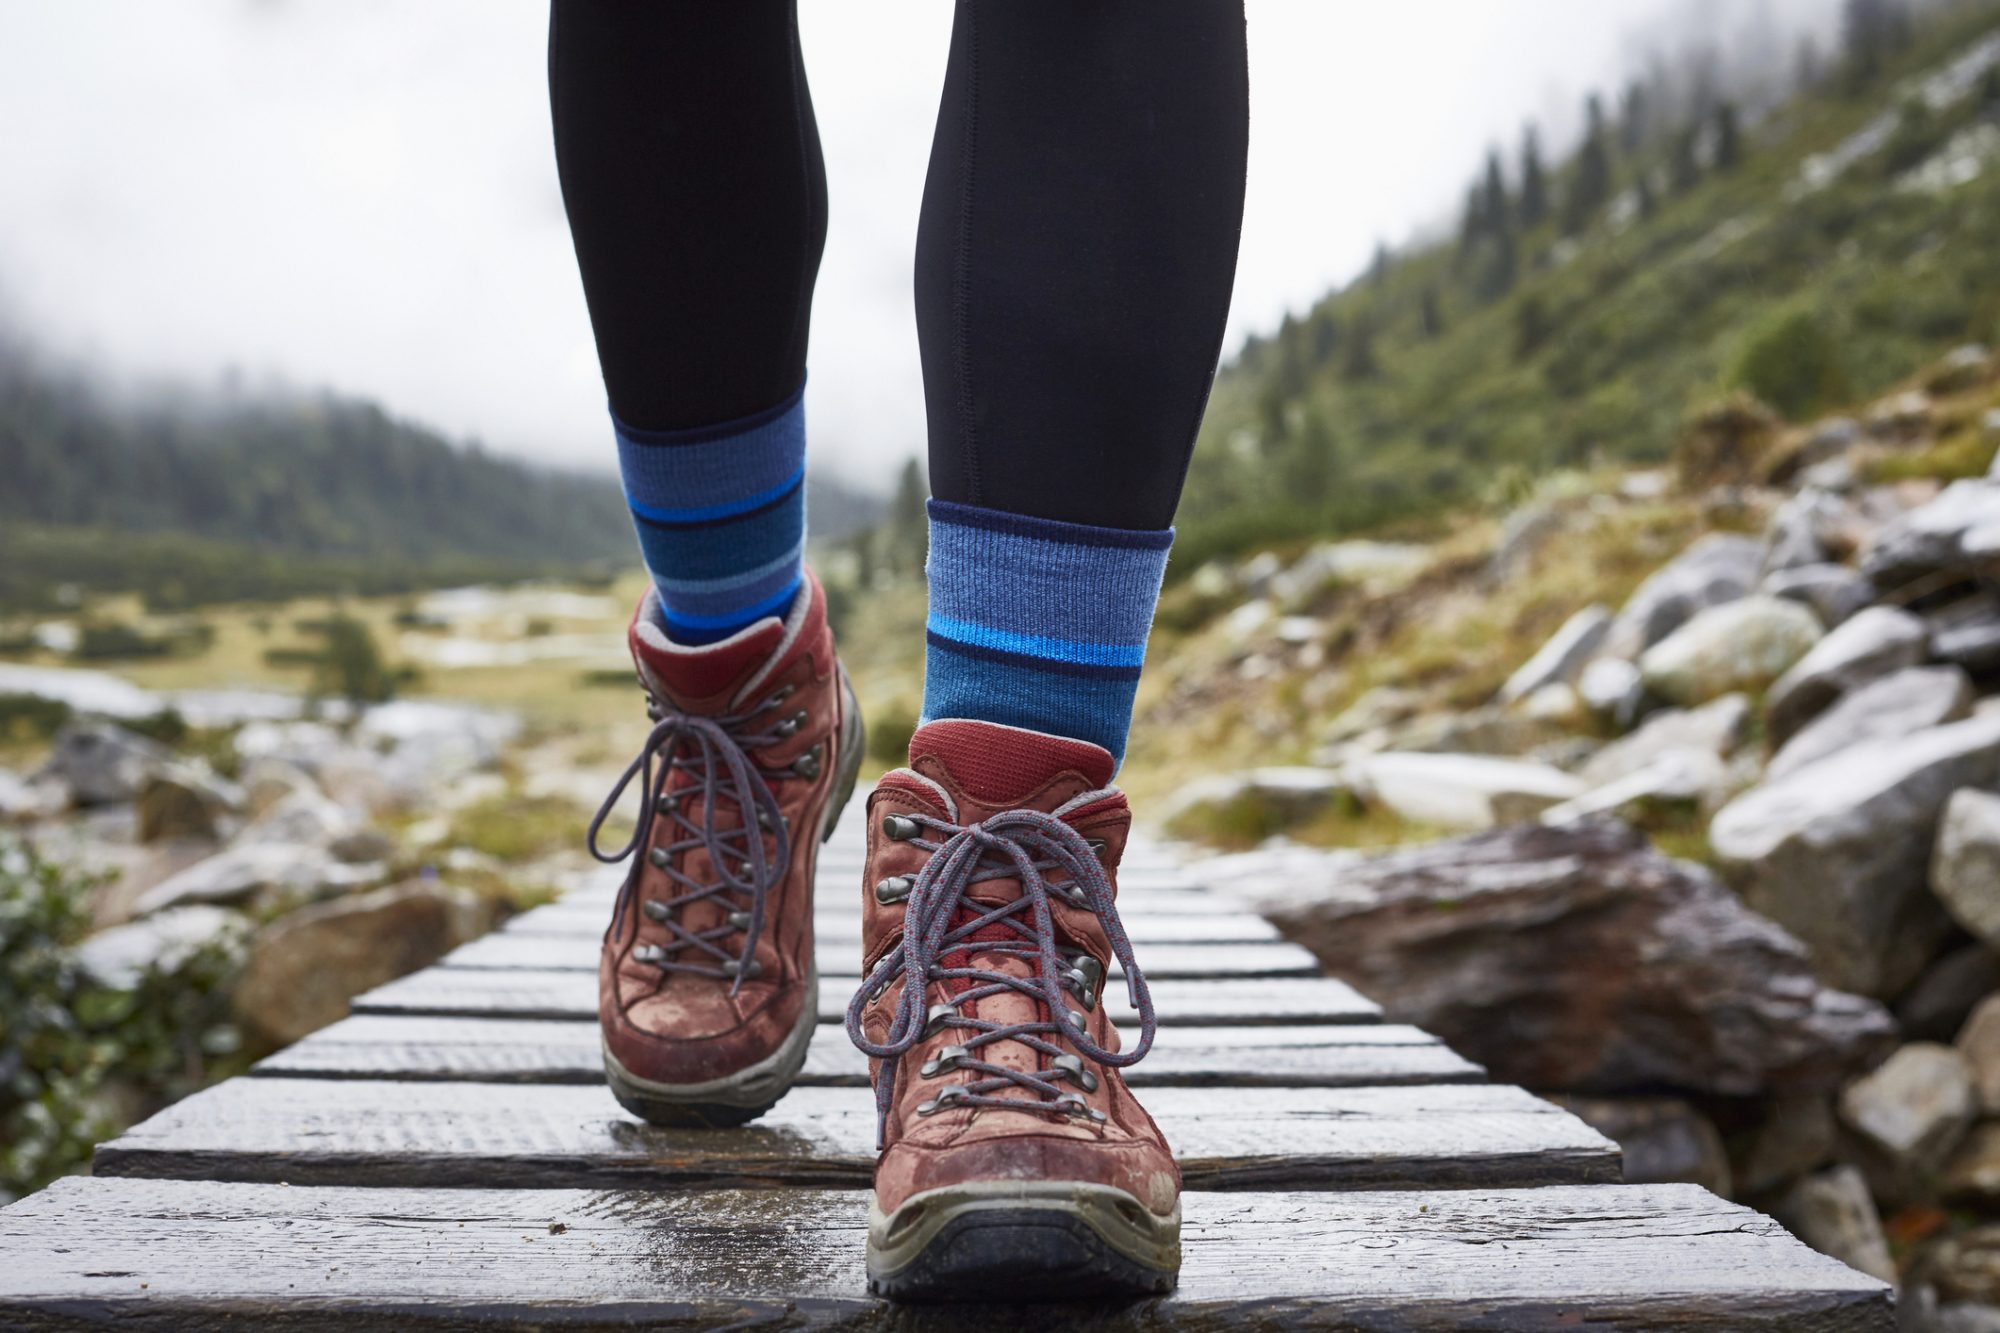 Female hiker hiking across wooden footbridge, cropped view of legs and hiking boots